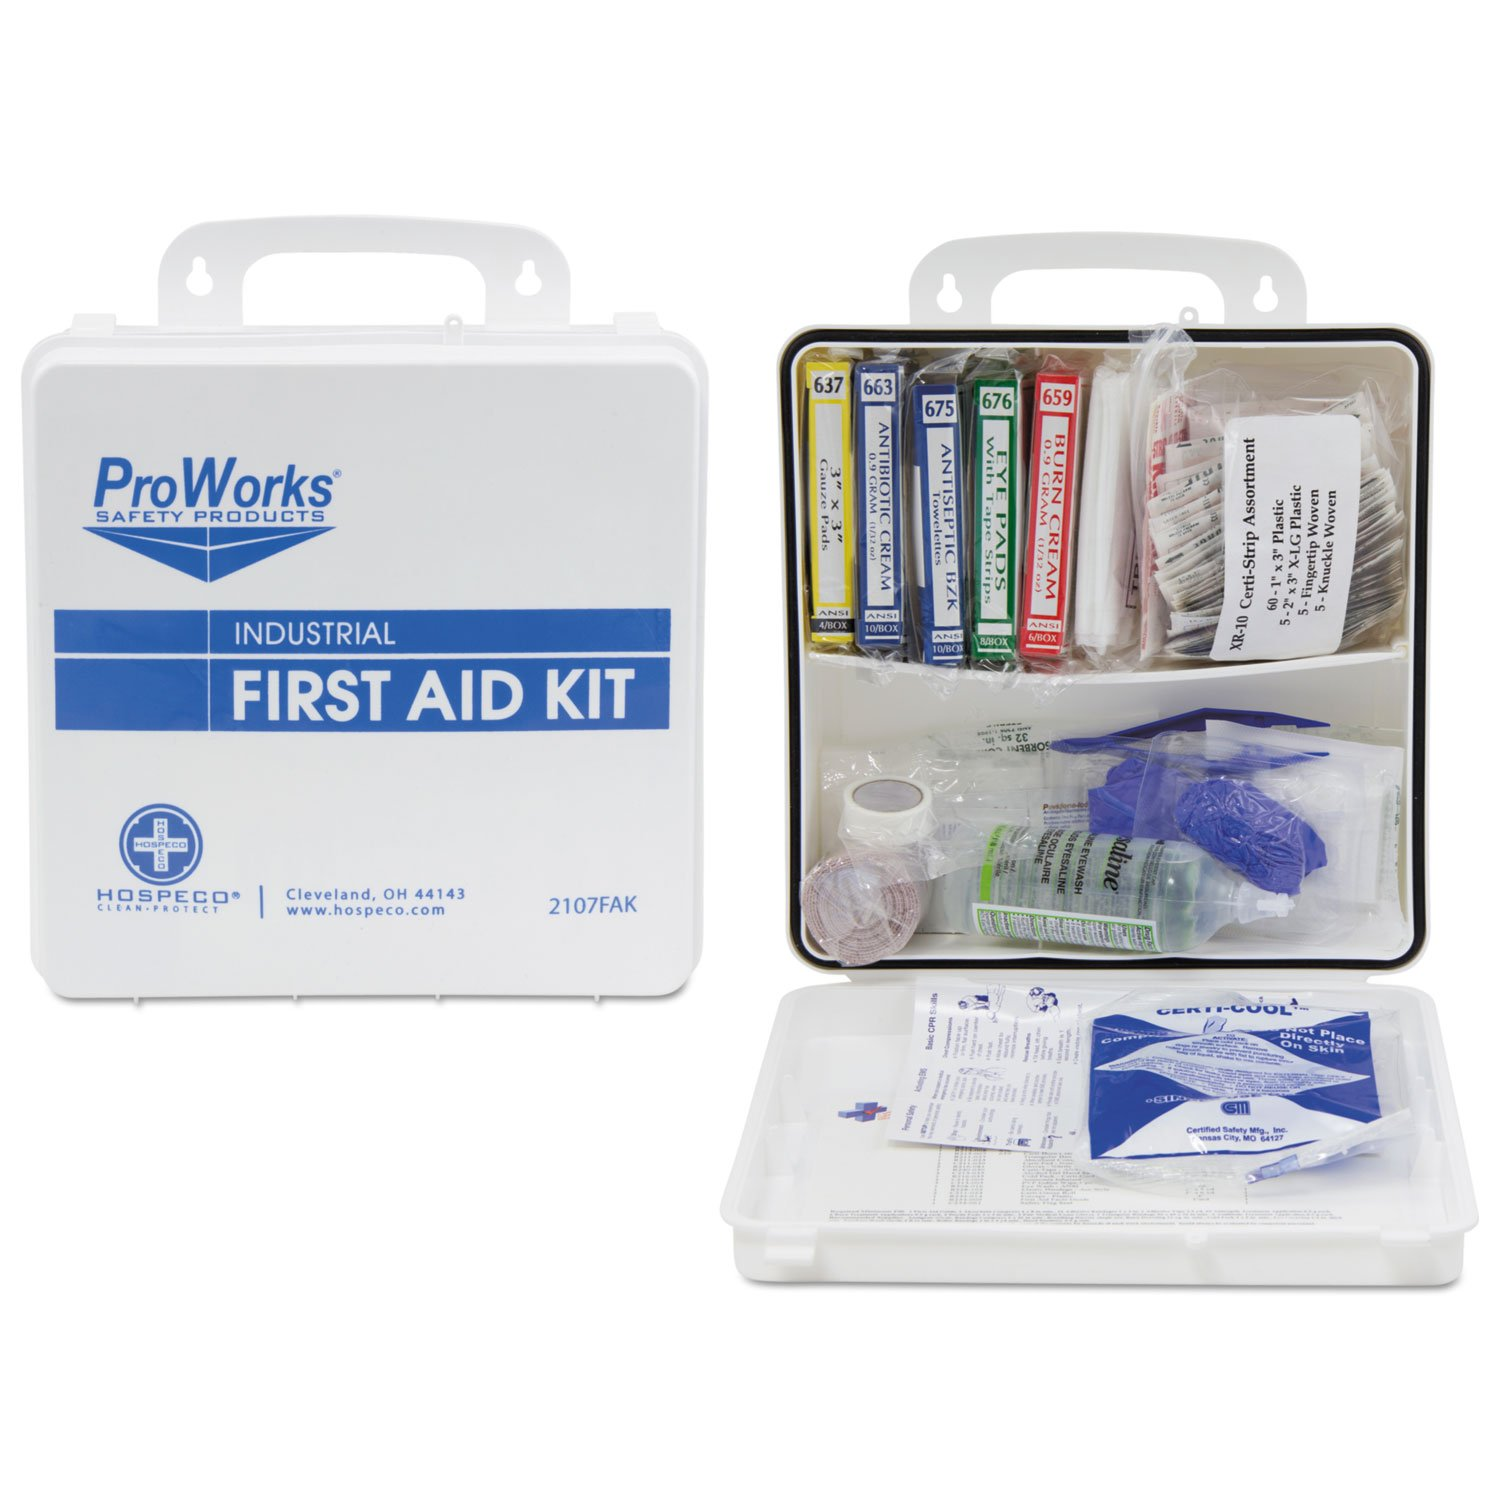 HOS2107 - Hospeco Health Gards First Aid Kit, 50 Person, 290 Pieces, 9 3/4 In X 14 In X 2 3/4 In